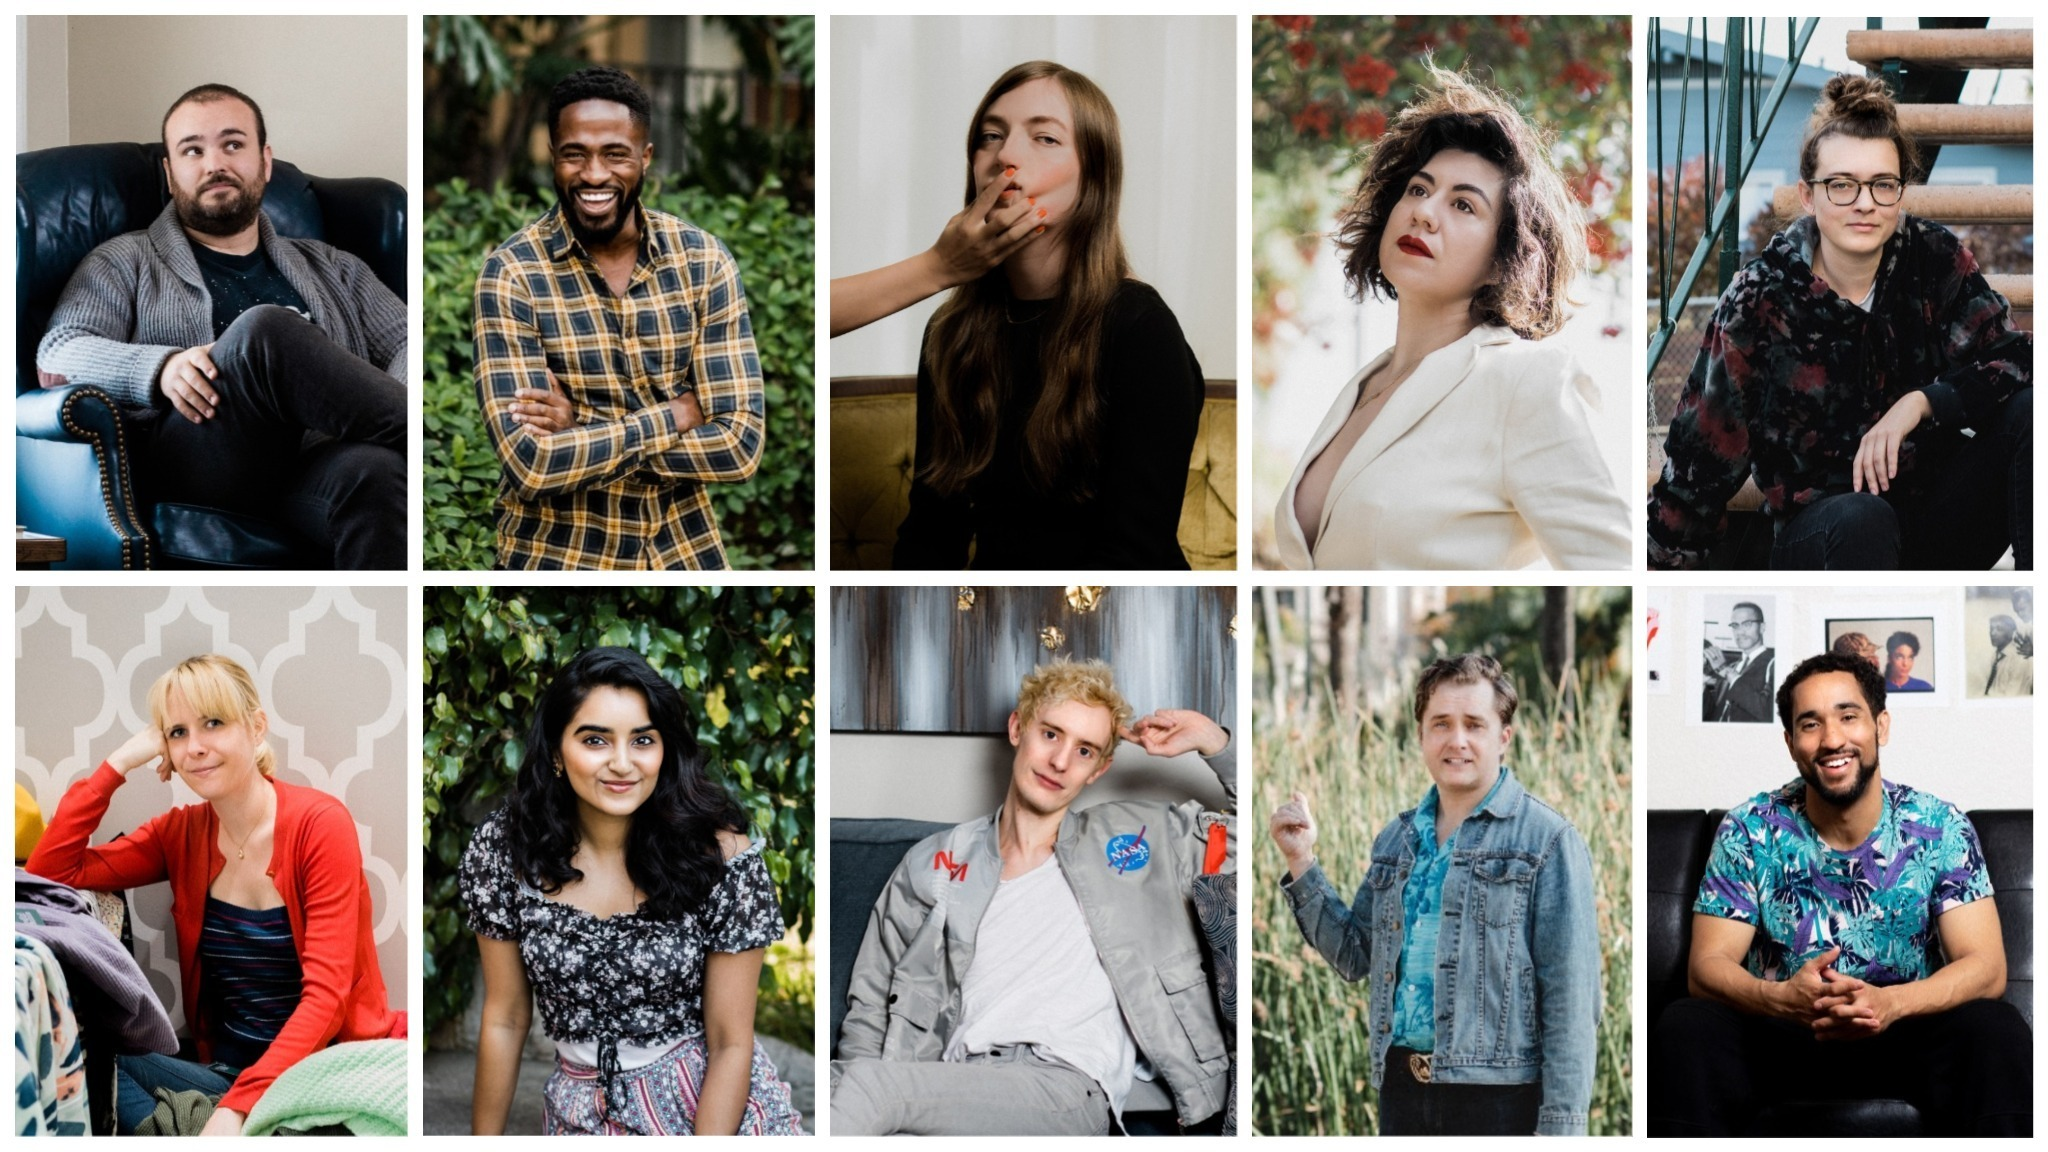 10 L.A. comedians to watch in 2020